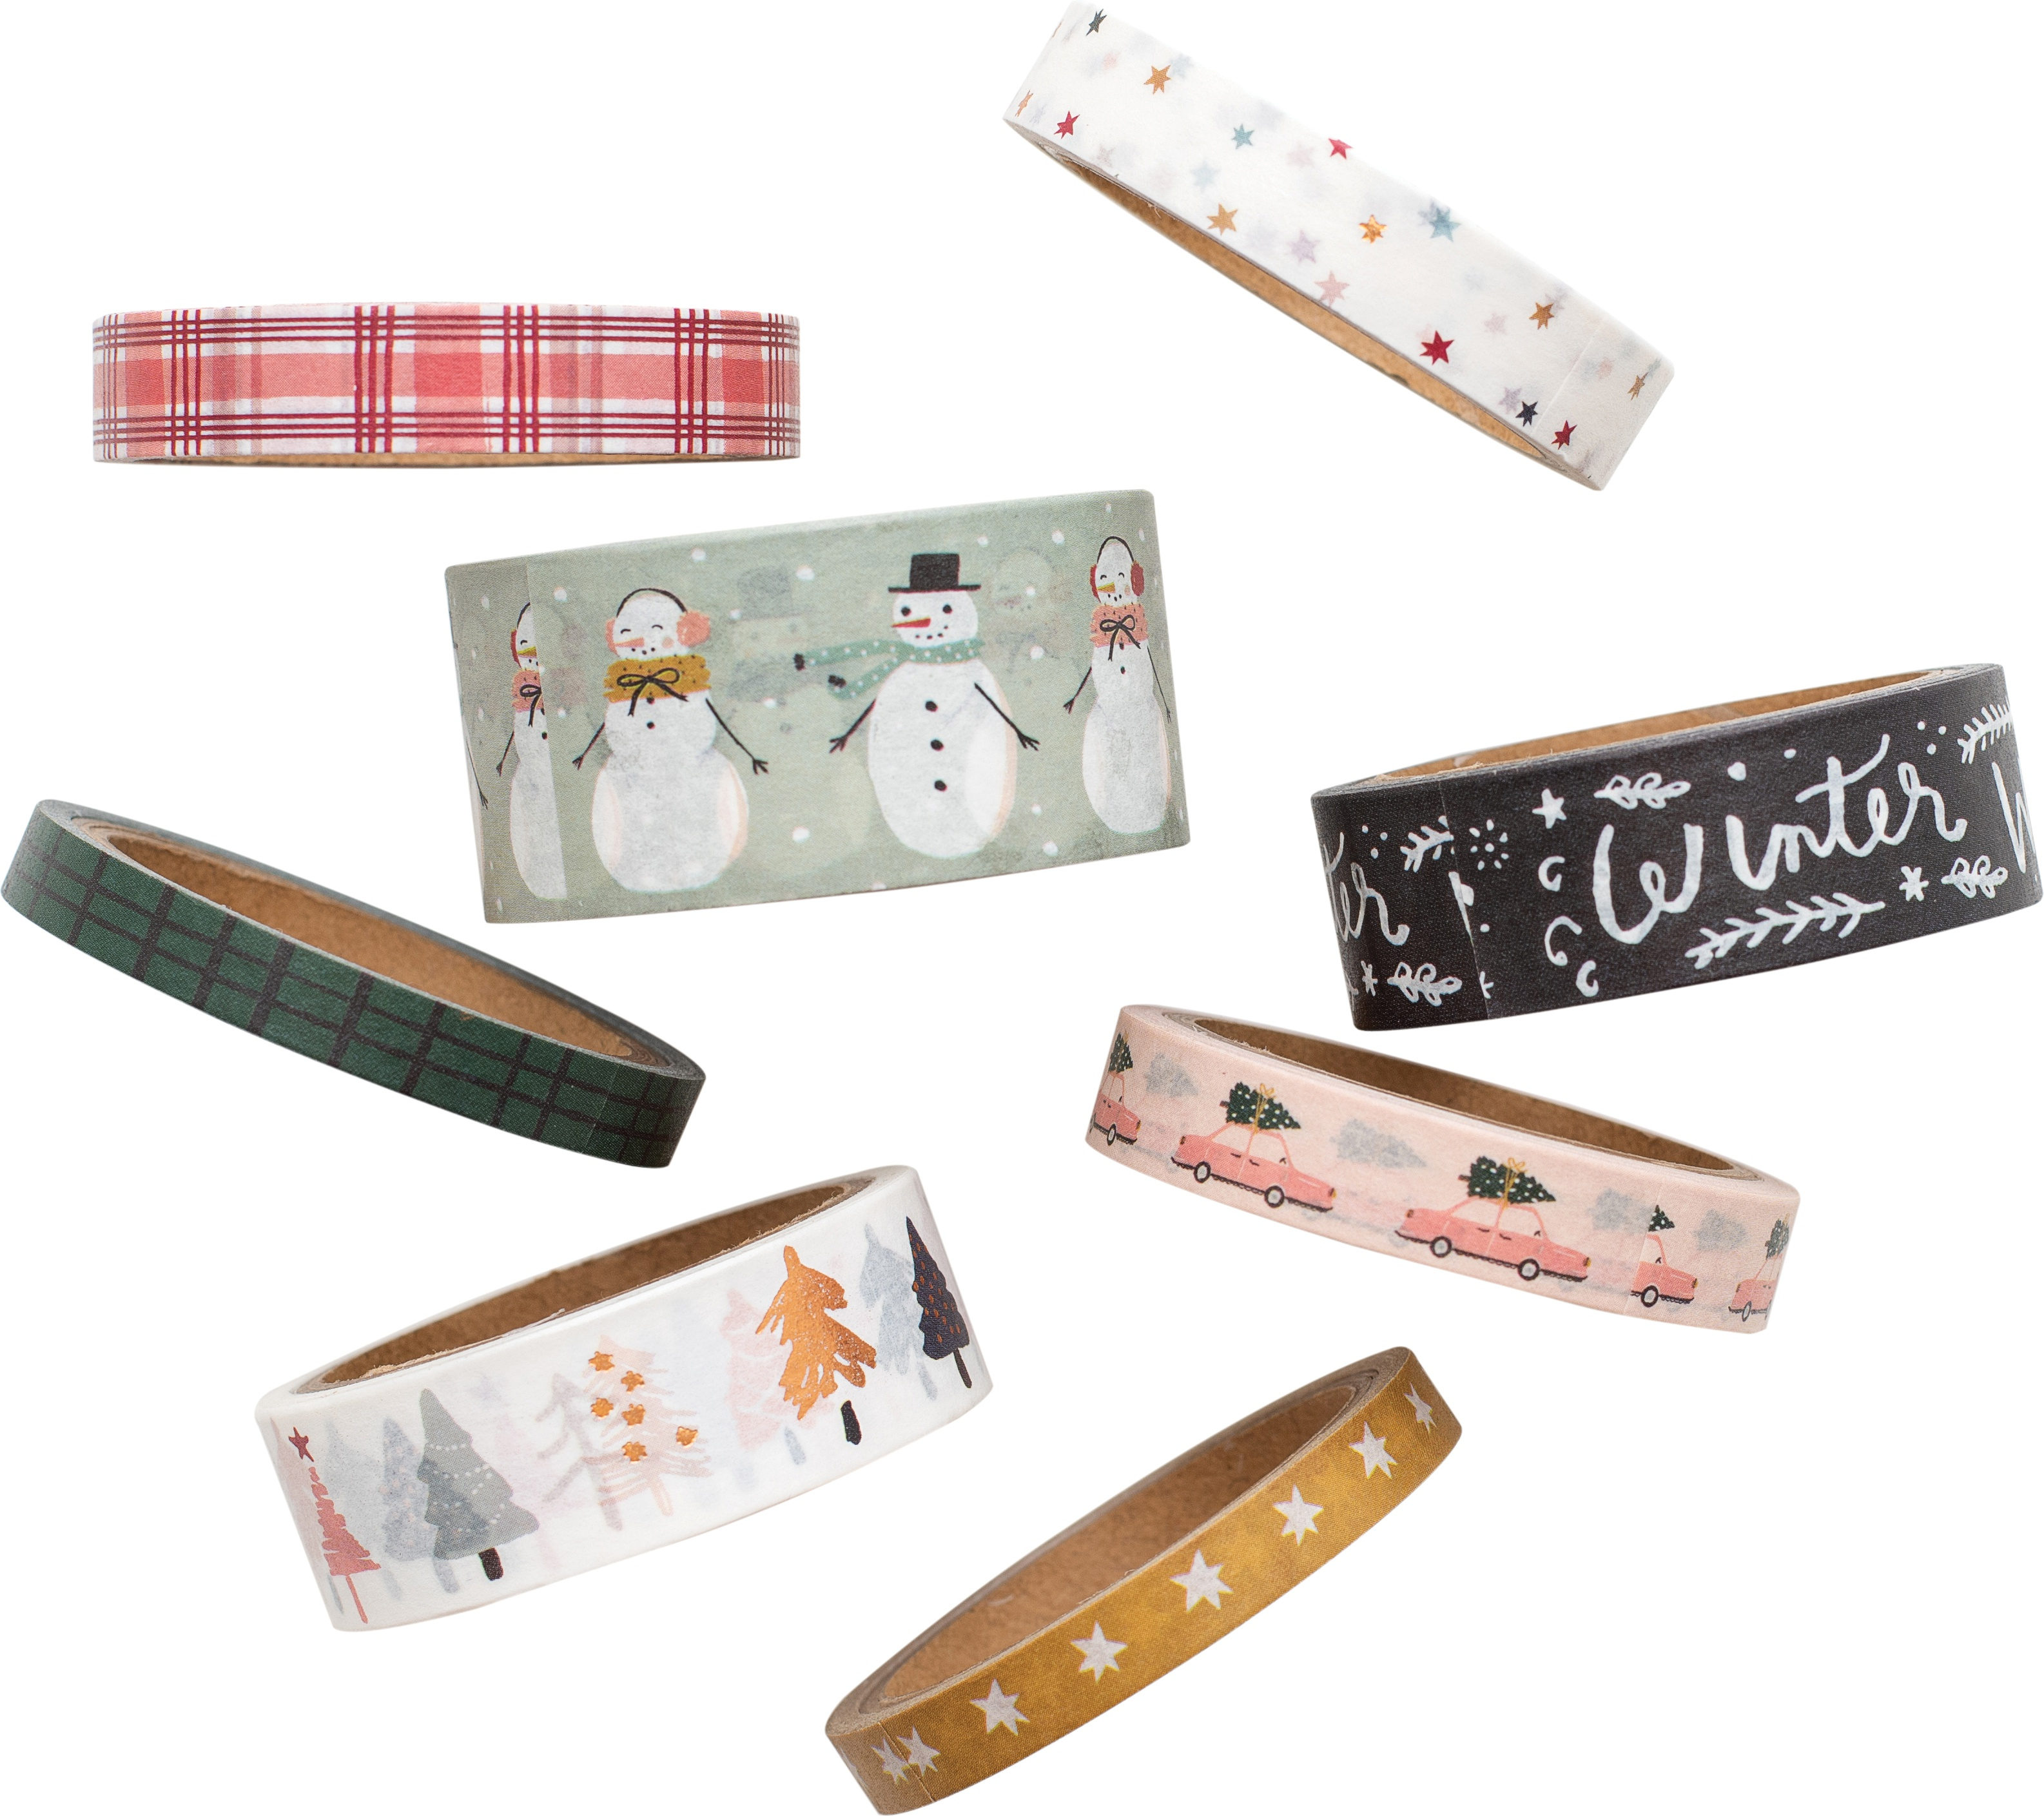 Snowflake Washi Tape 8/Pkg-4 To 6 Yards Each